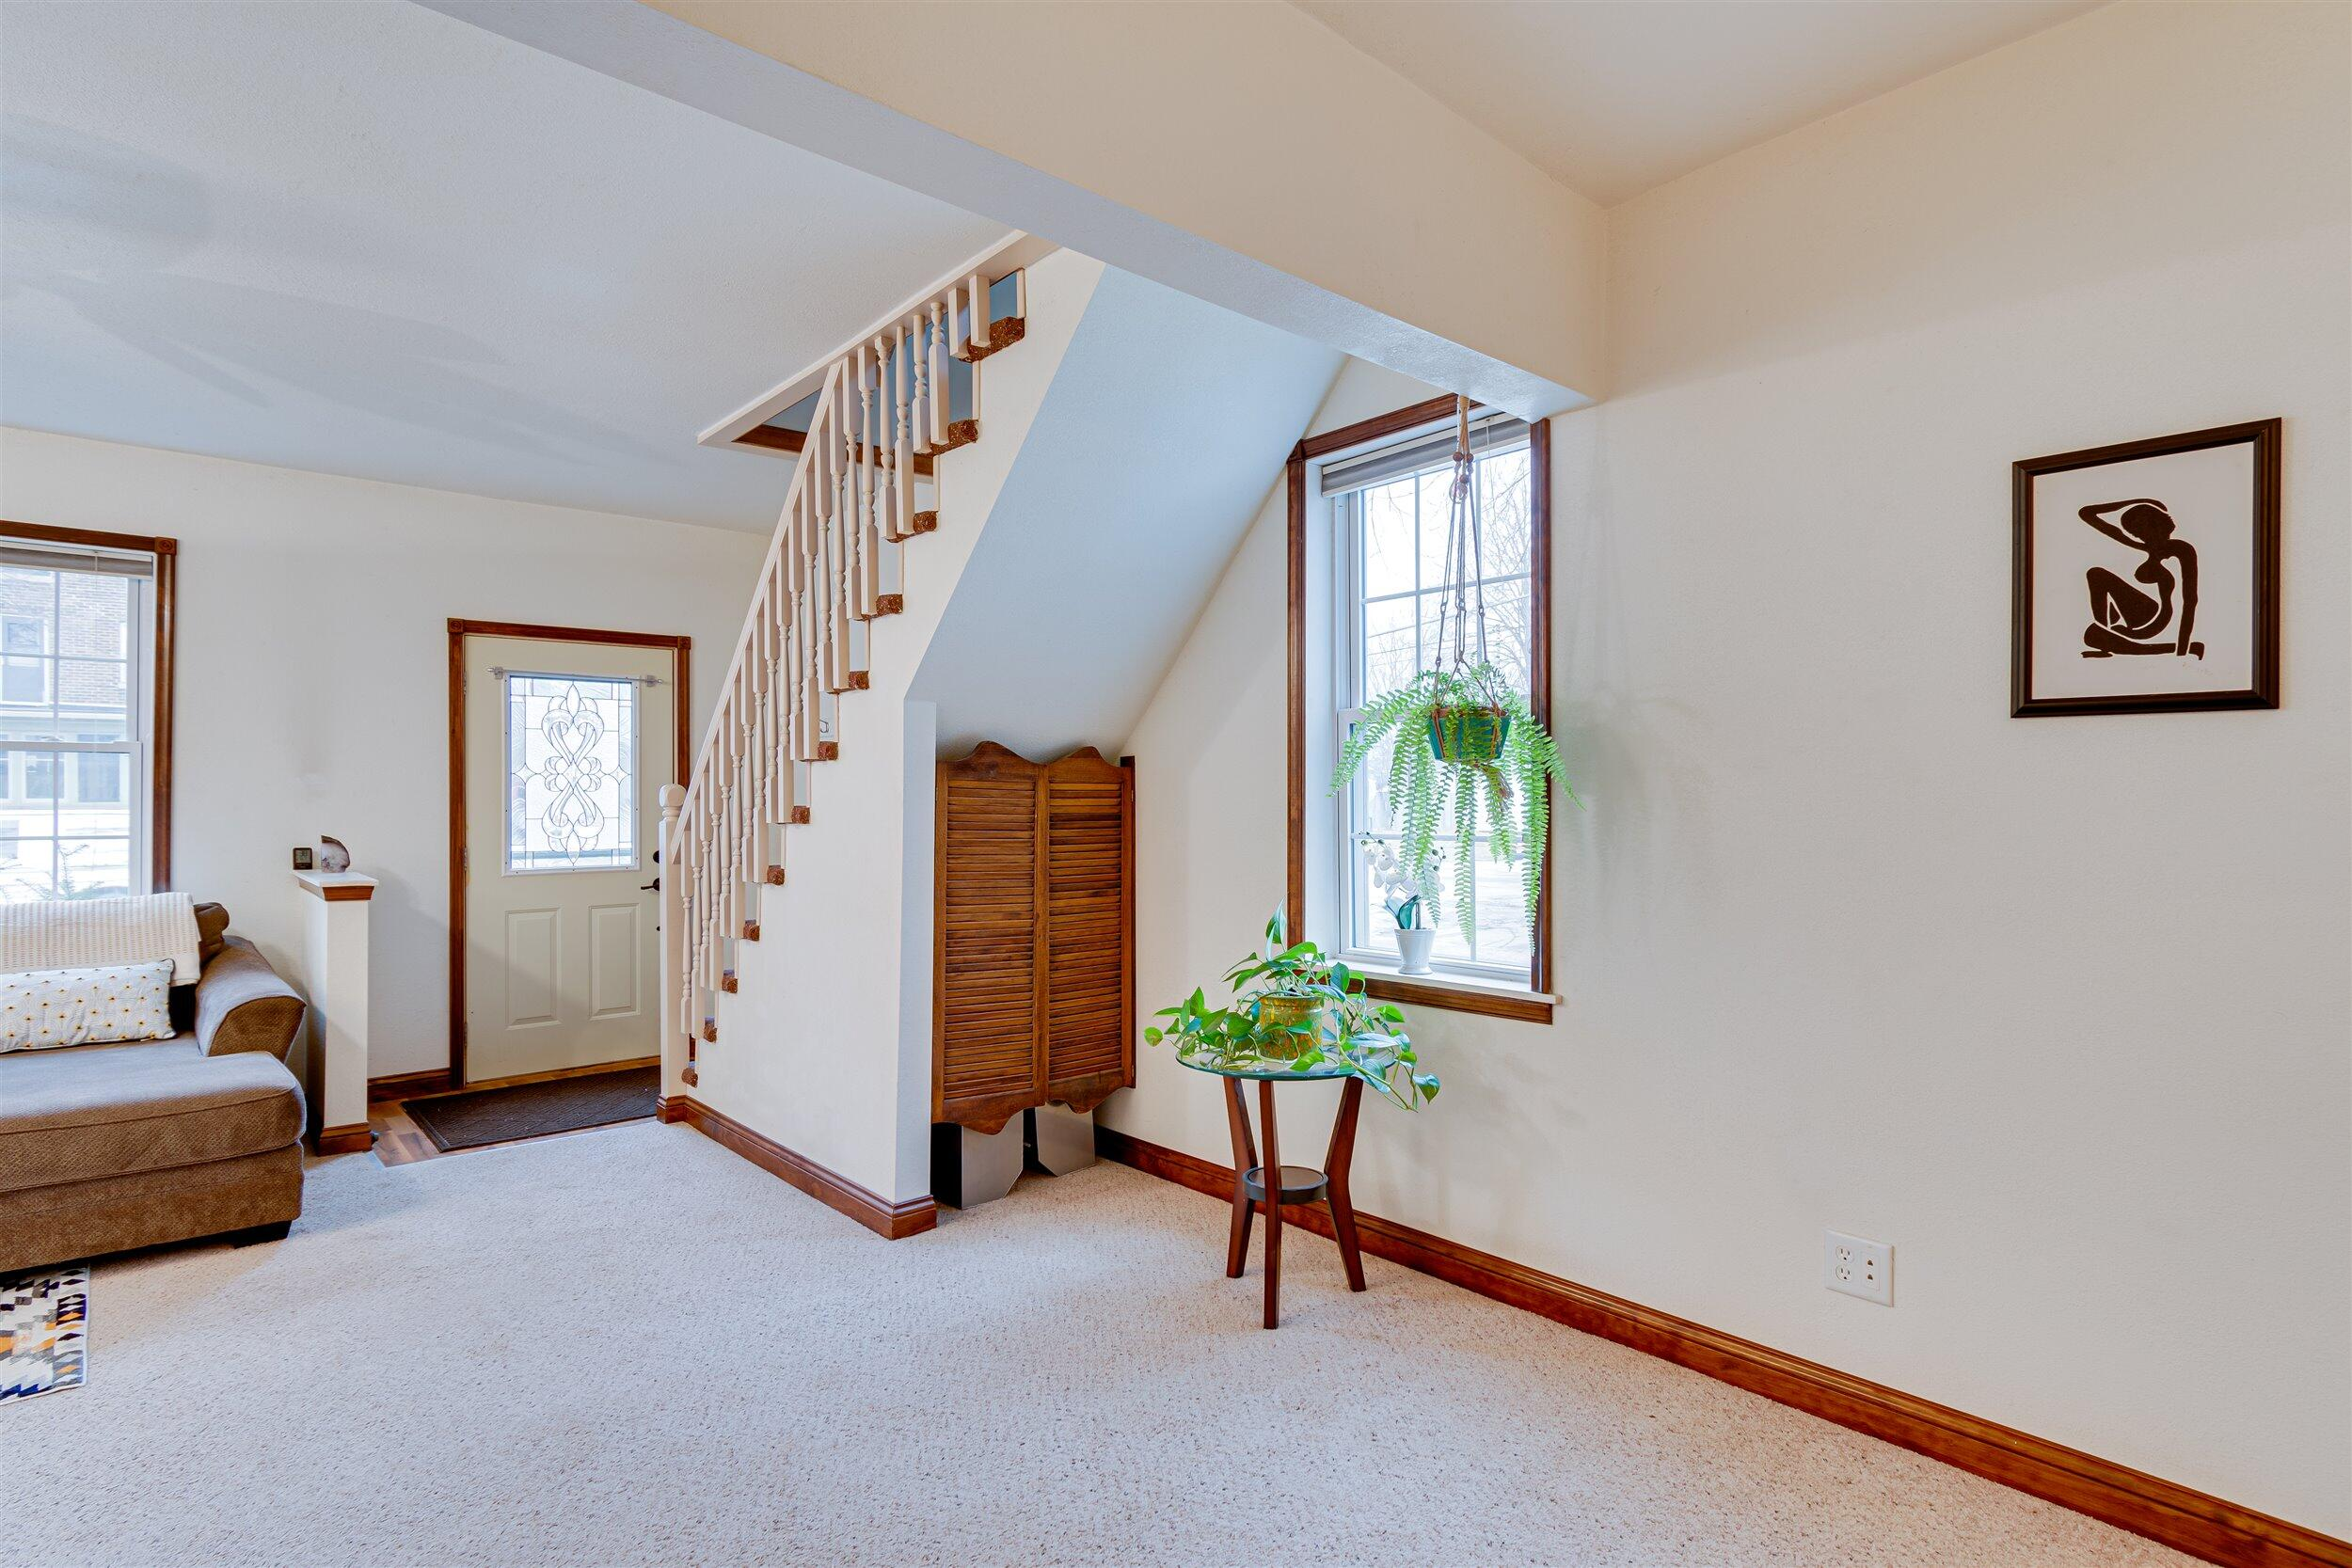 Stair view